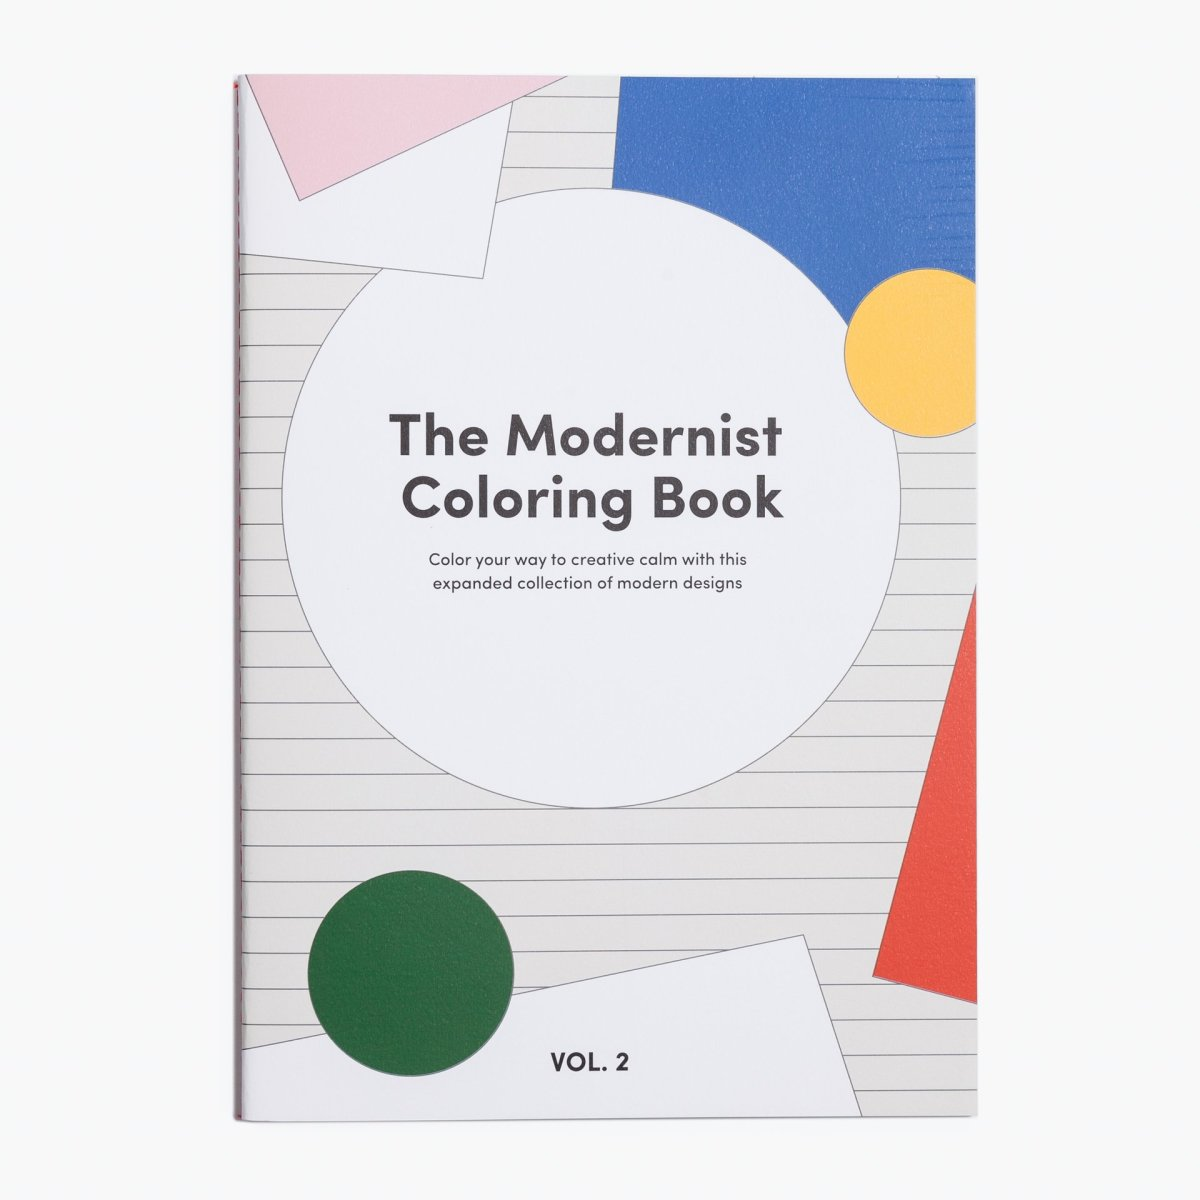 the_modernist_coloring_book_2400-1_49d54ba2-cda5-4631-b73d-739189775c1d_1920x